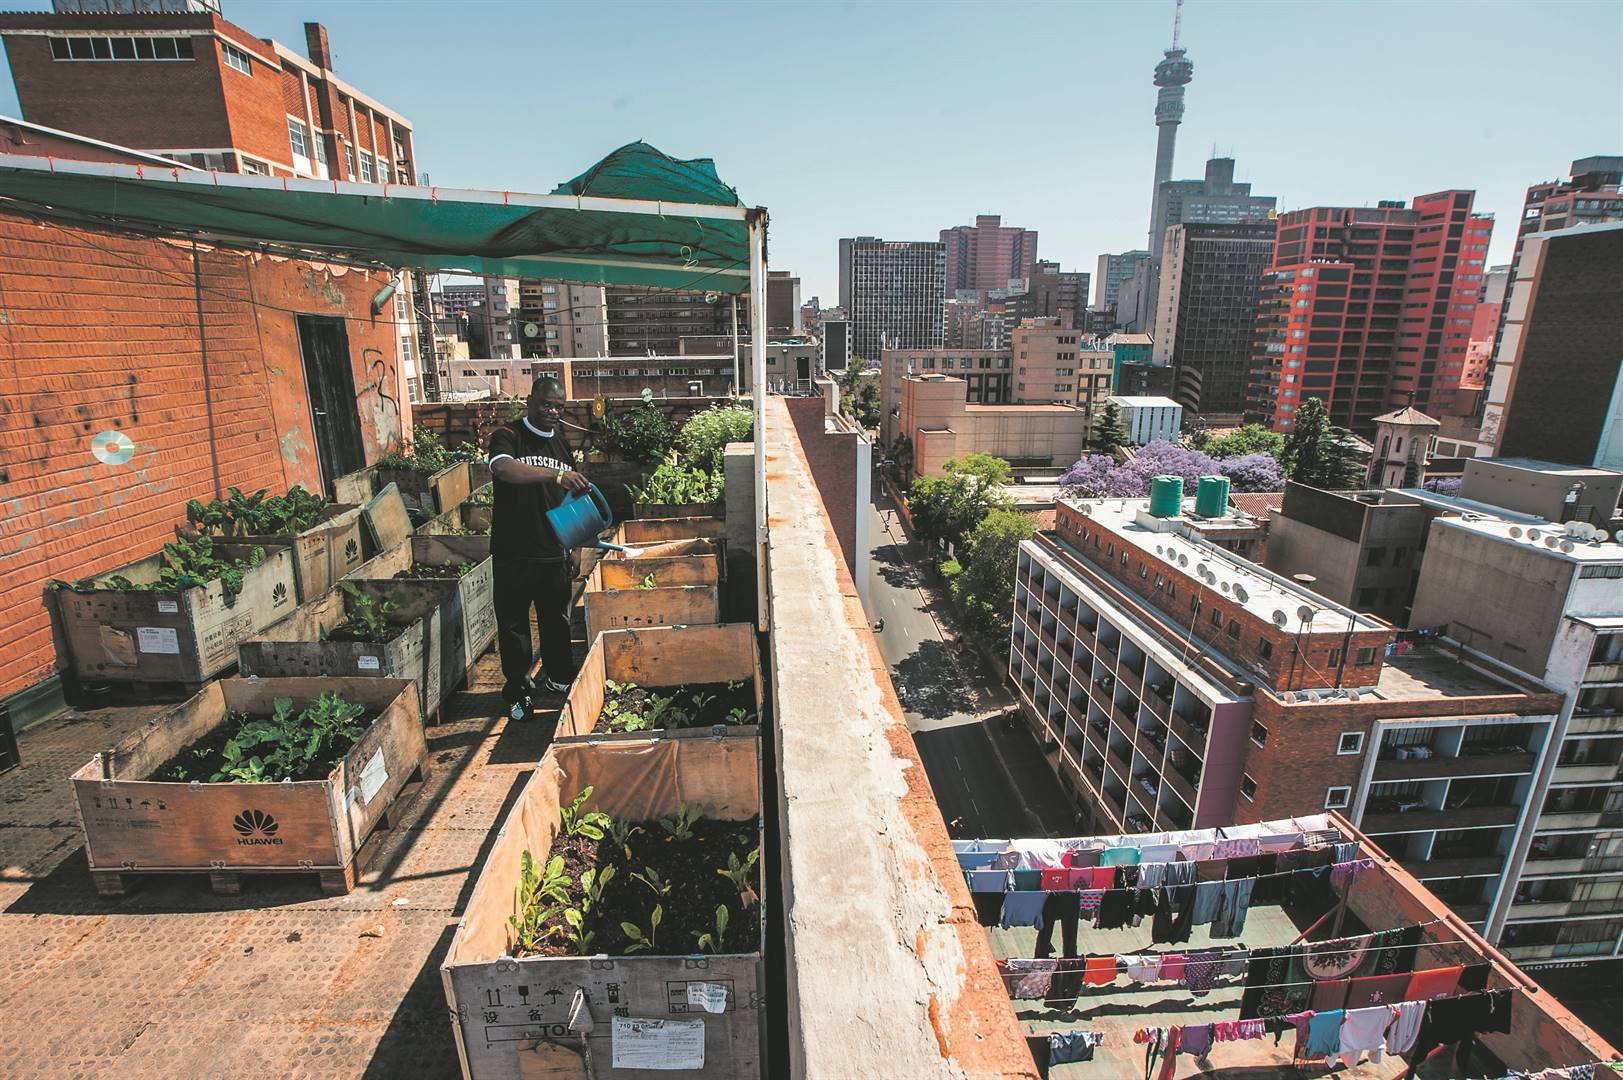 A vegetable garden on a rooftop in Johannesburg